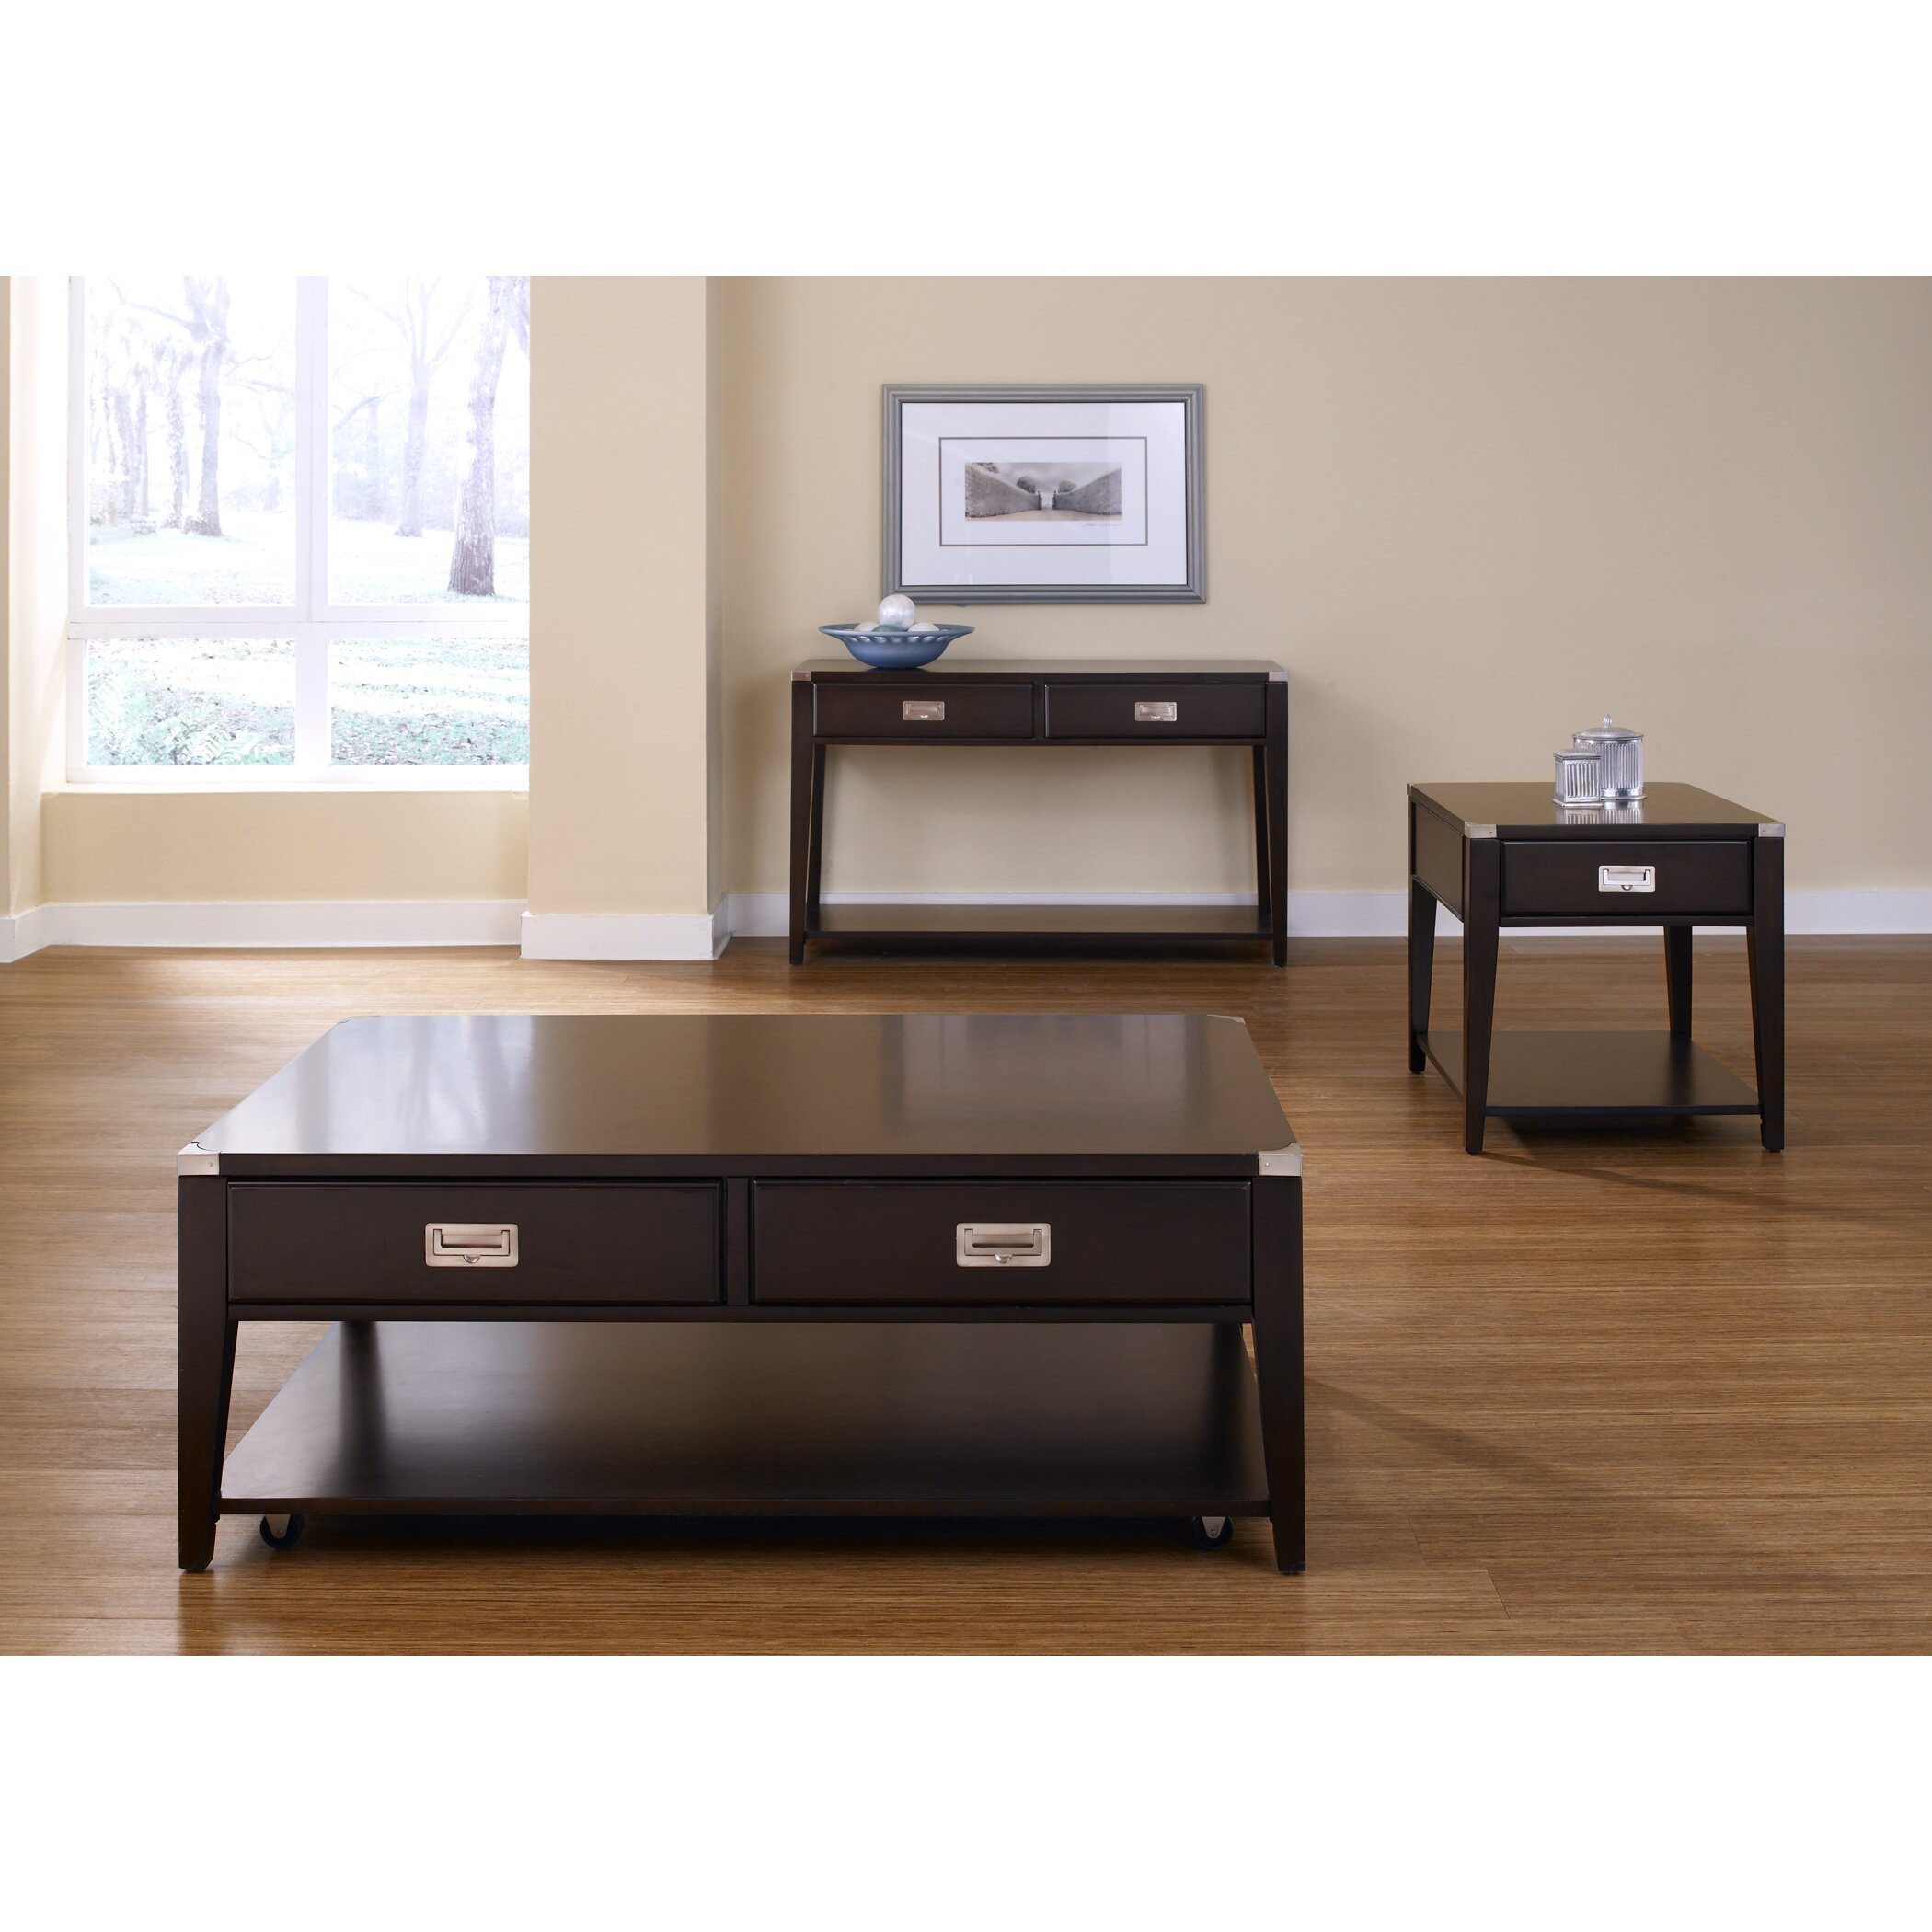 Coffee Table Sets At Wayfair: Liberty Furniture Coffee Table Set & Reviews